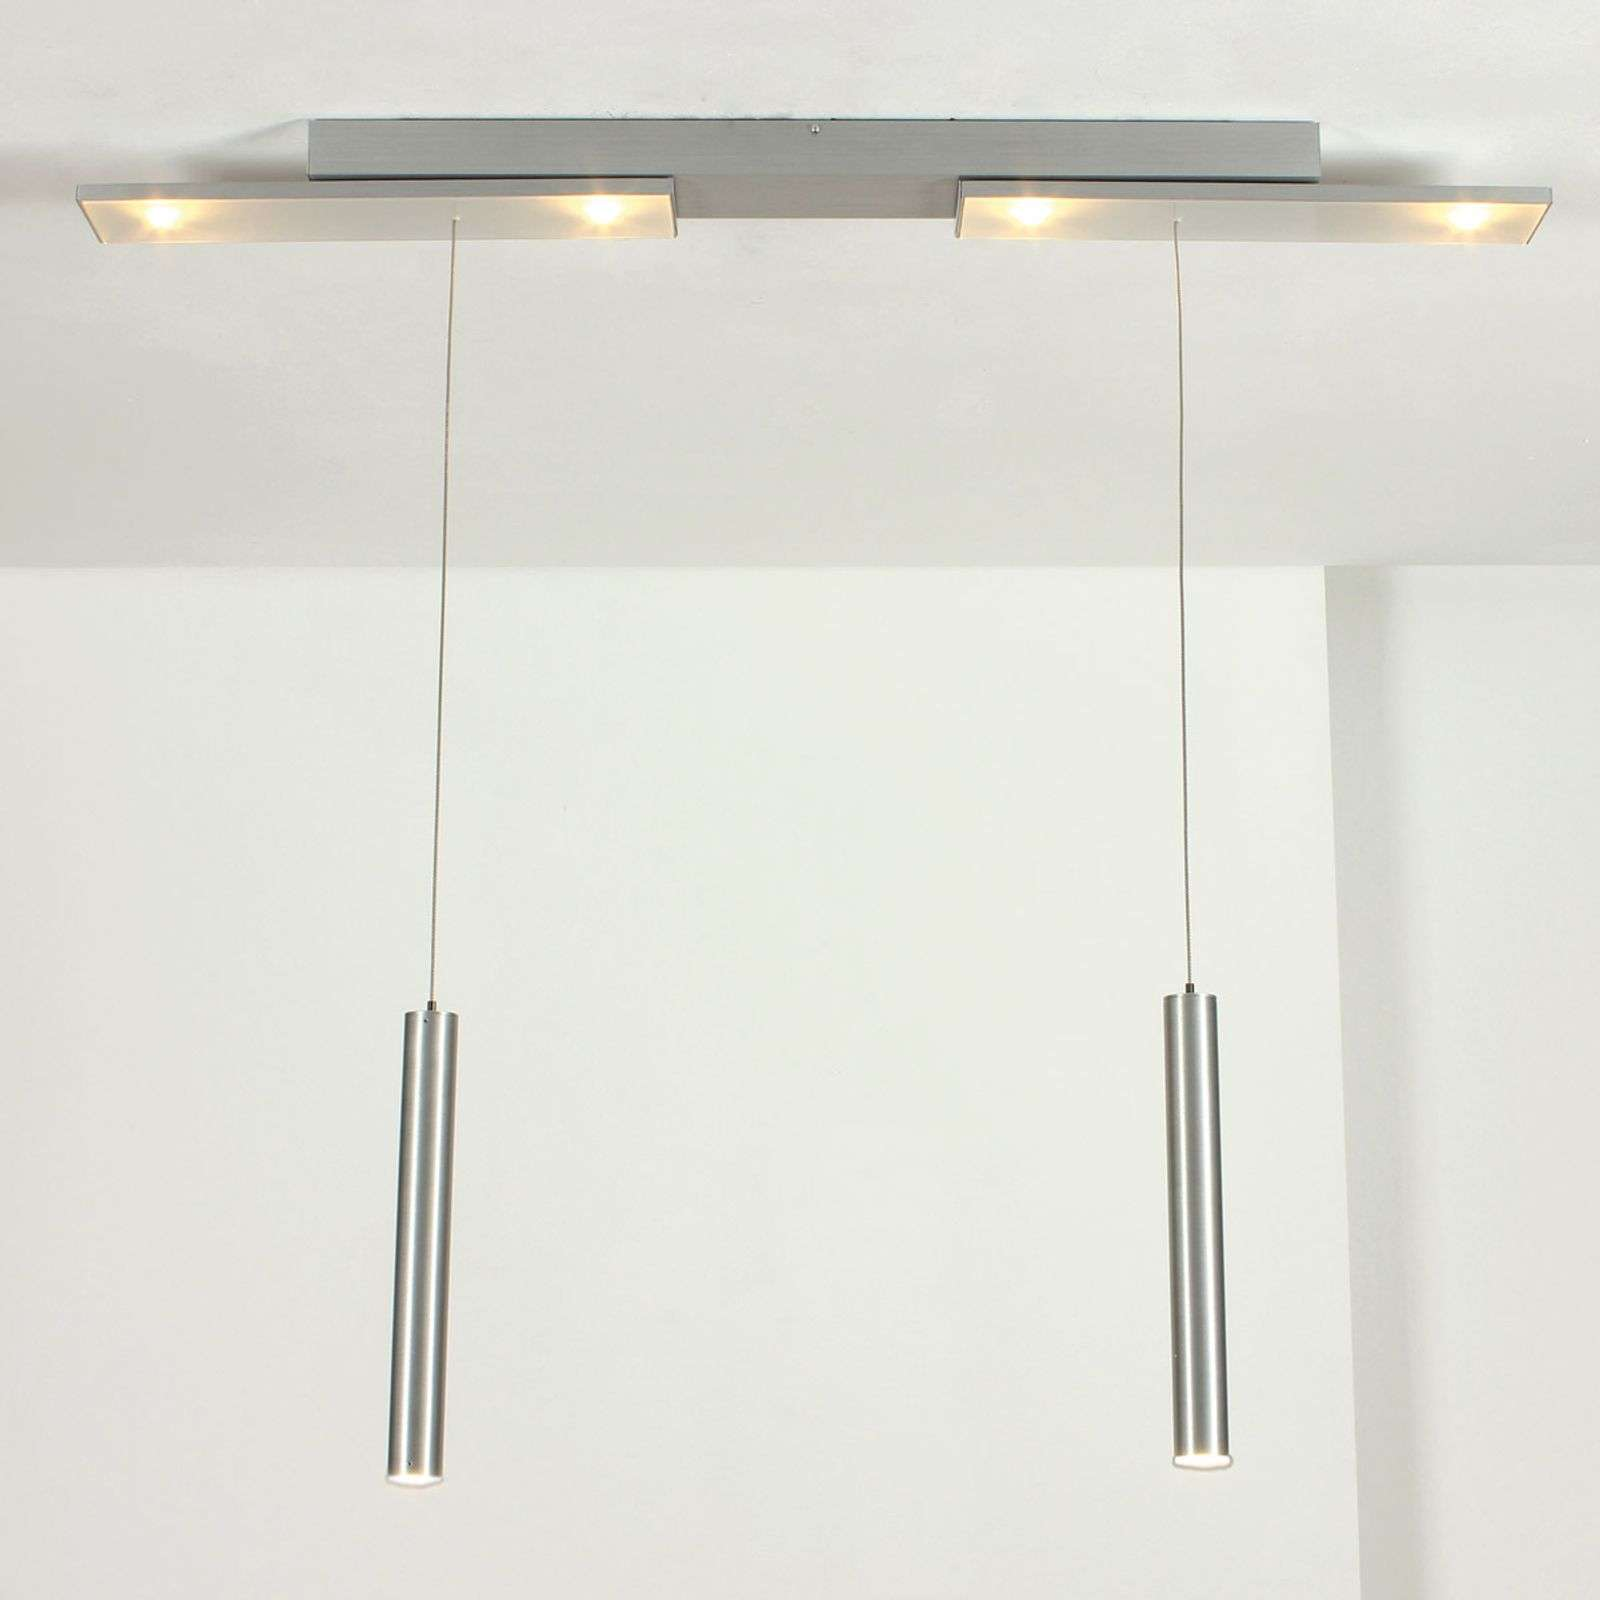 Suspension LED exceptionnelle Plus